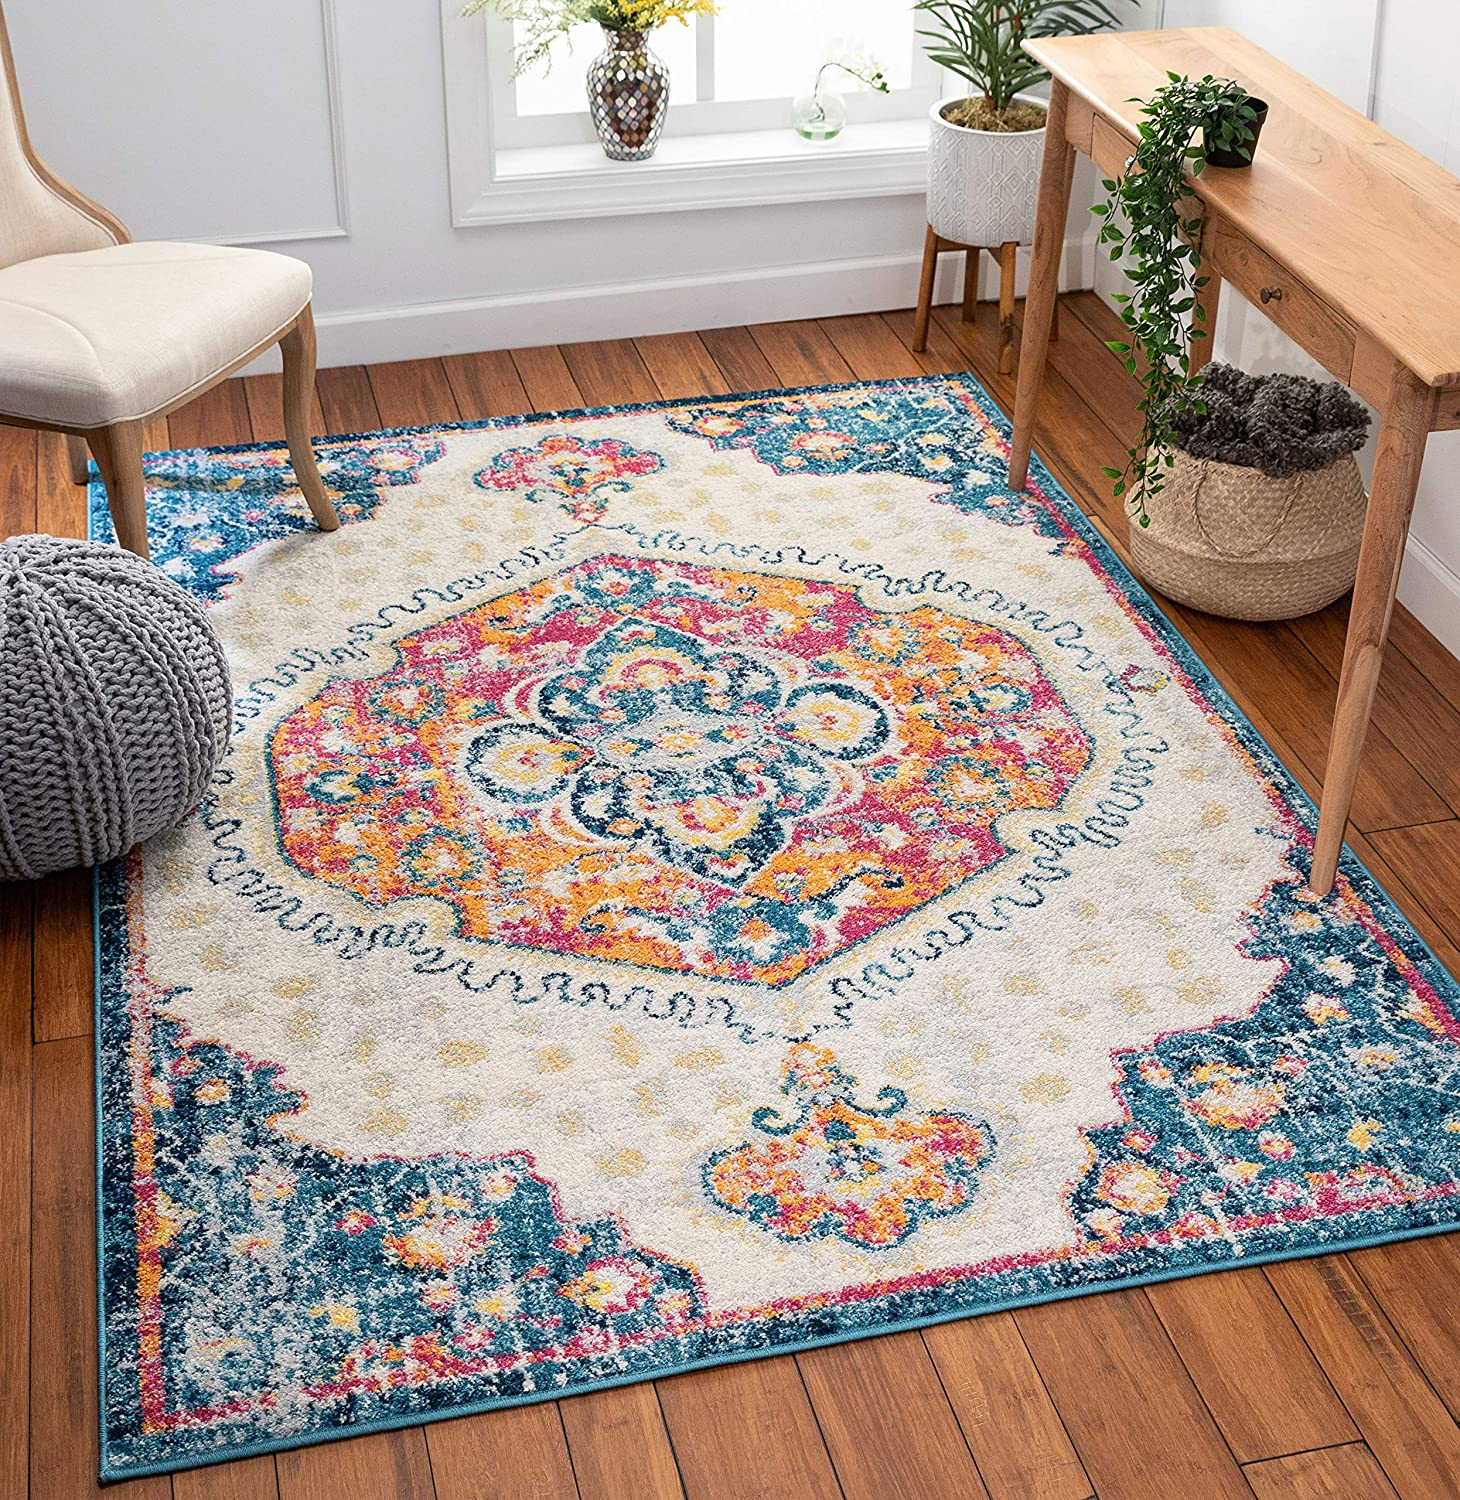 Well Woven Cato Fuschia Vintage Medallion Area Rug 5x7 Bohemian Max 86% Animer and price revision OFF